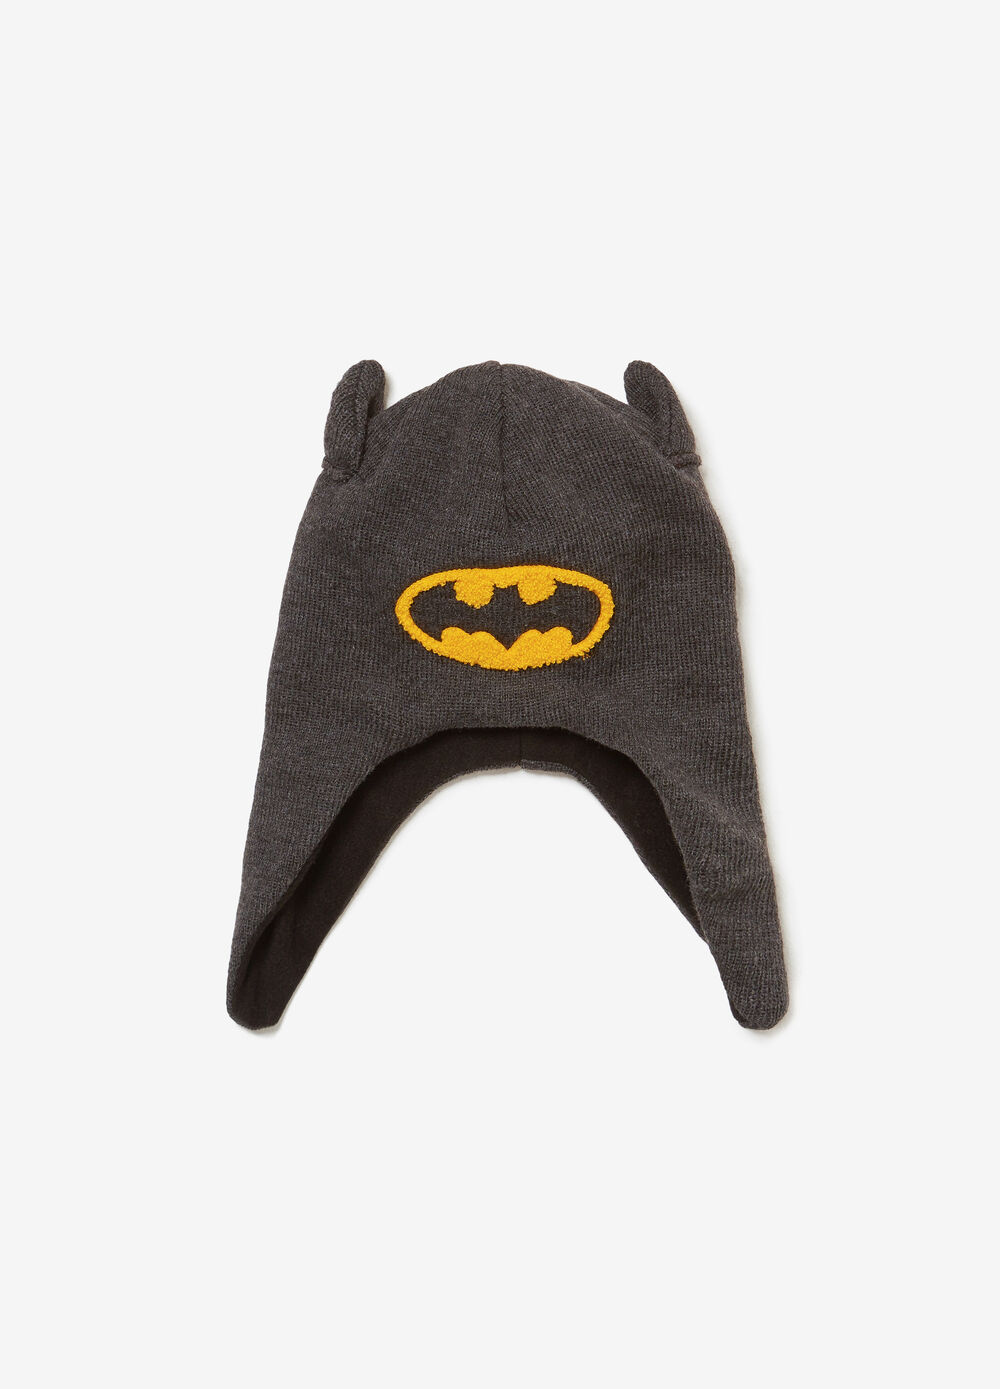 Hat with ear flaps and Batman patch